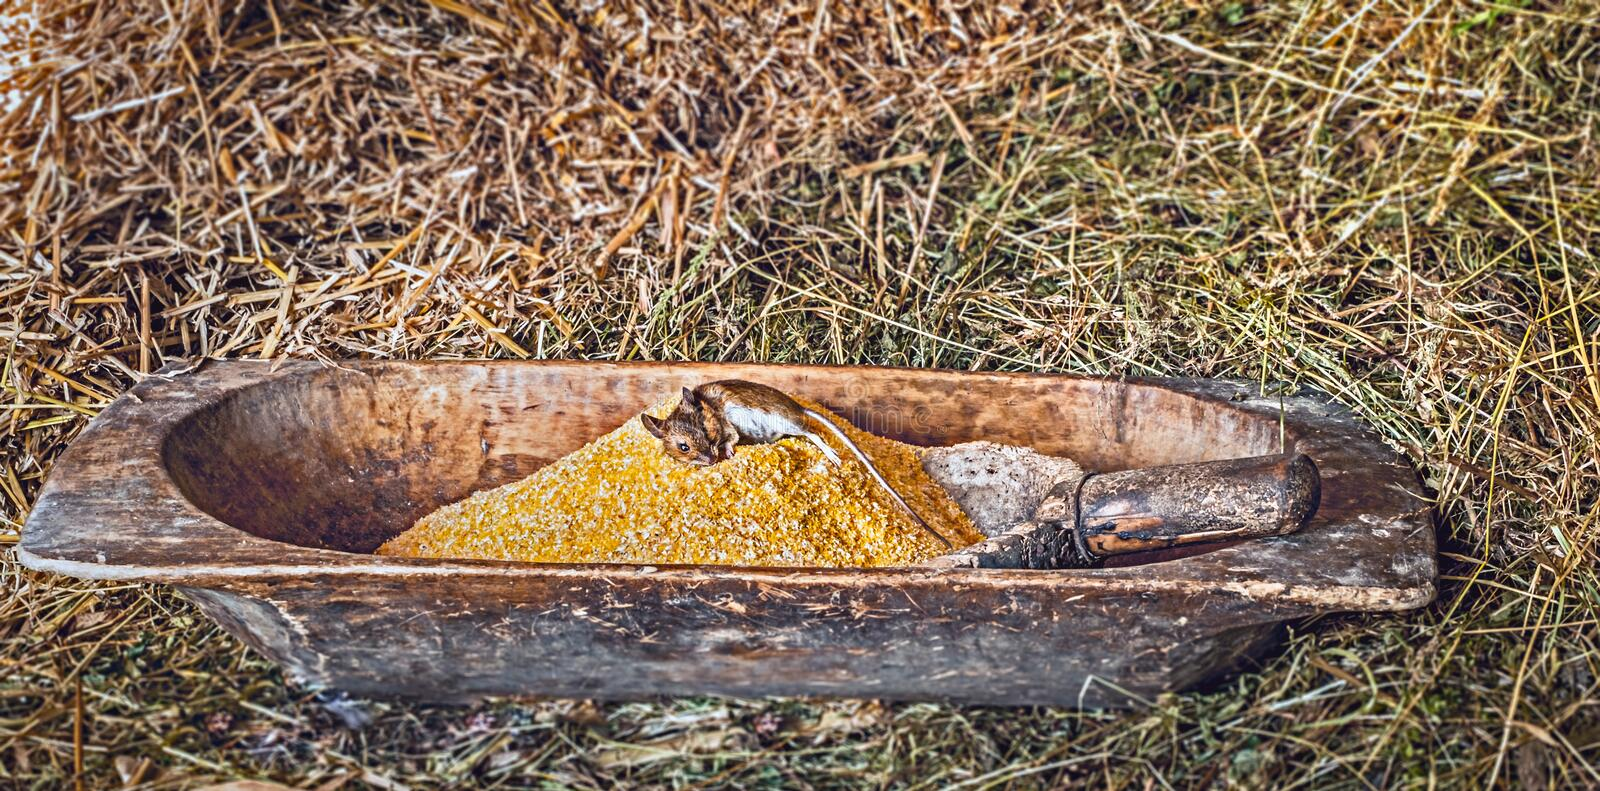 Dead mouse on corn flour. Closeup view royalty free stock photography